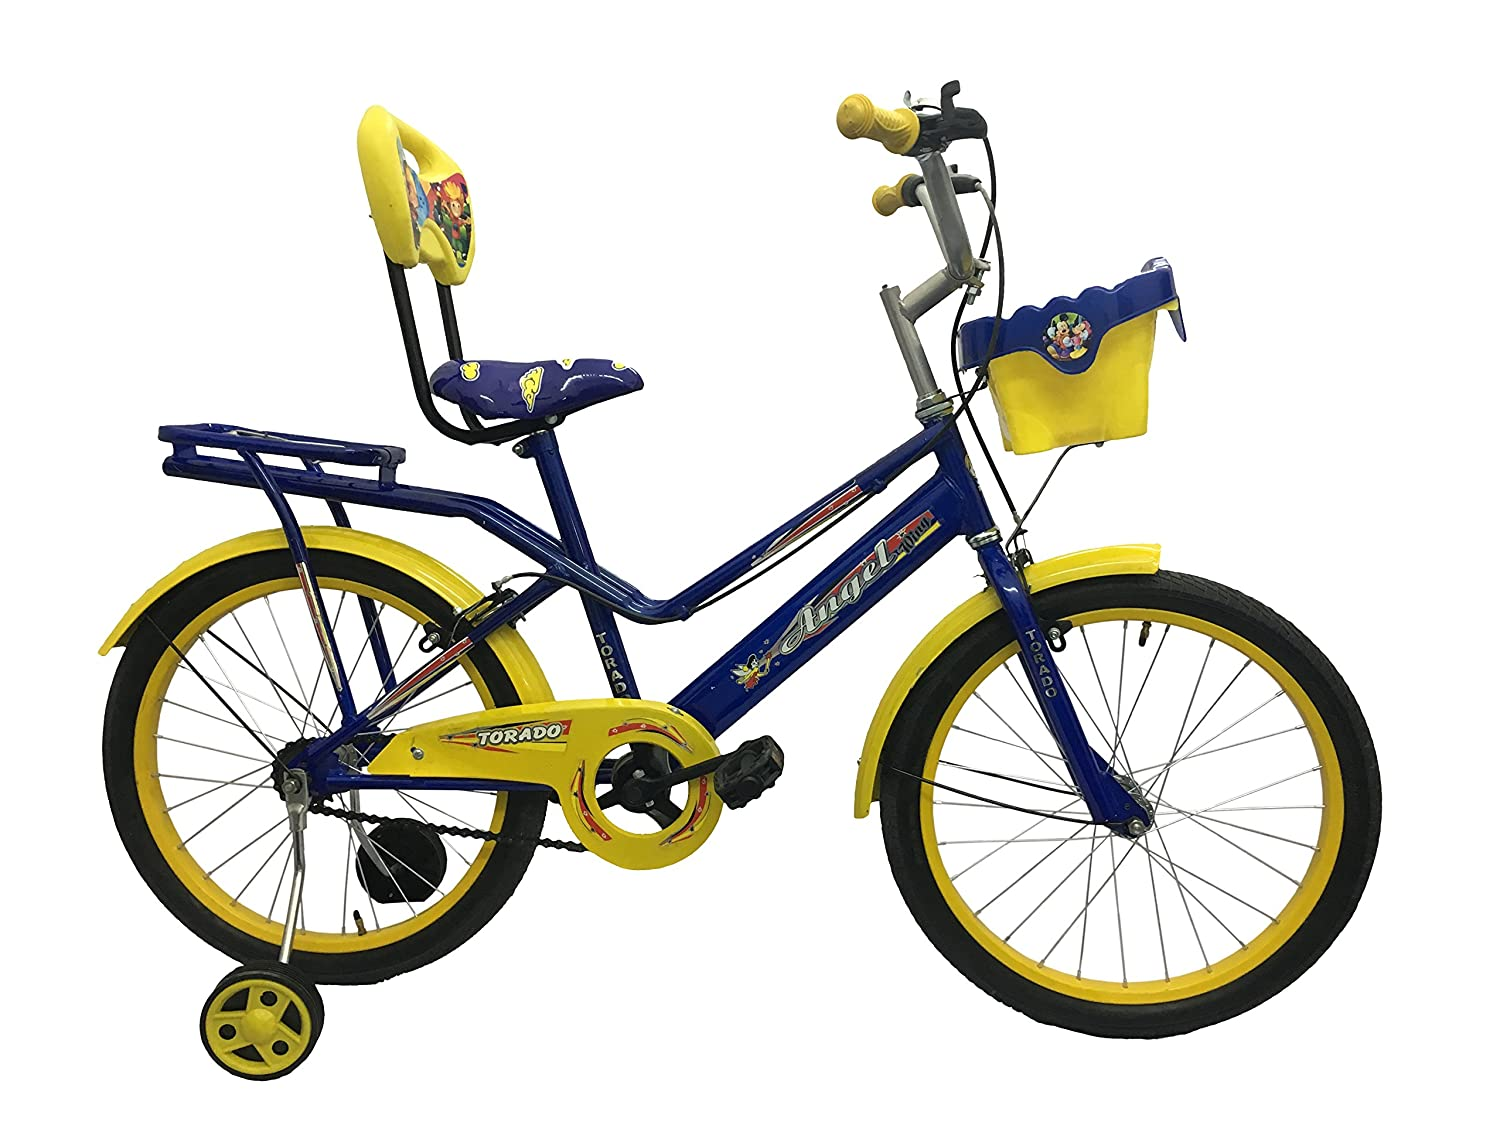 Selling Best Kids Cycle Under Rs 5000 in India.